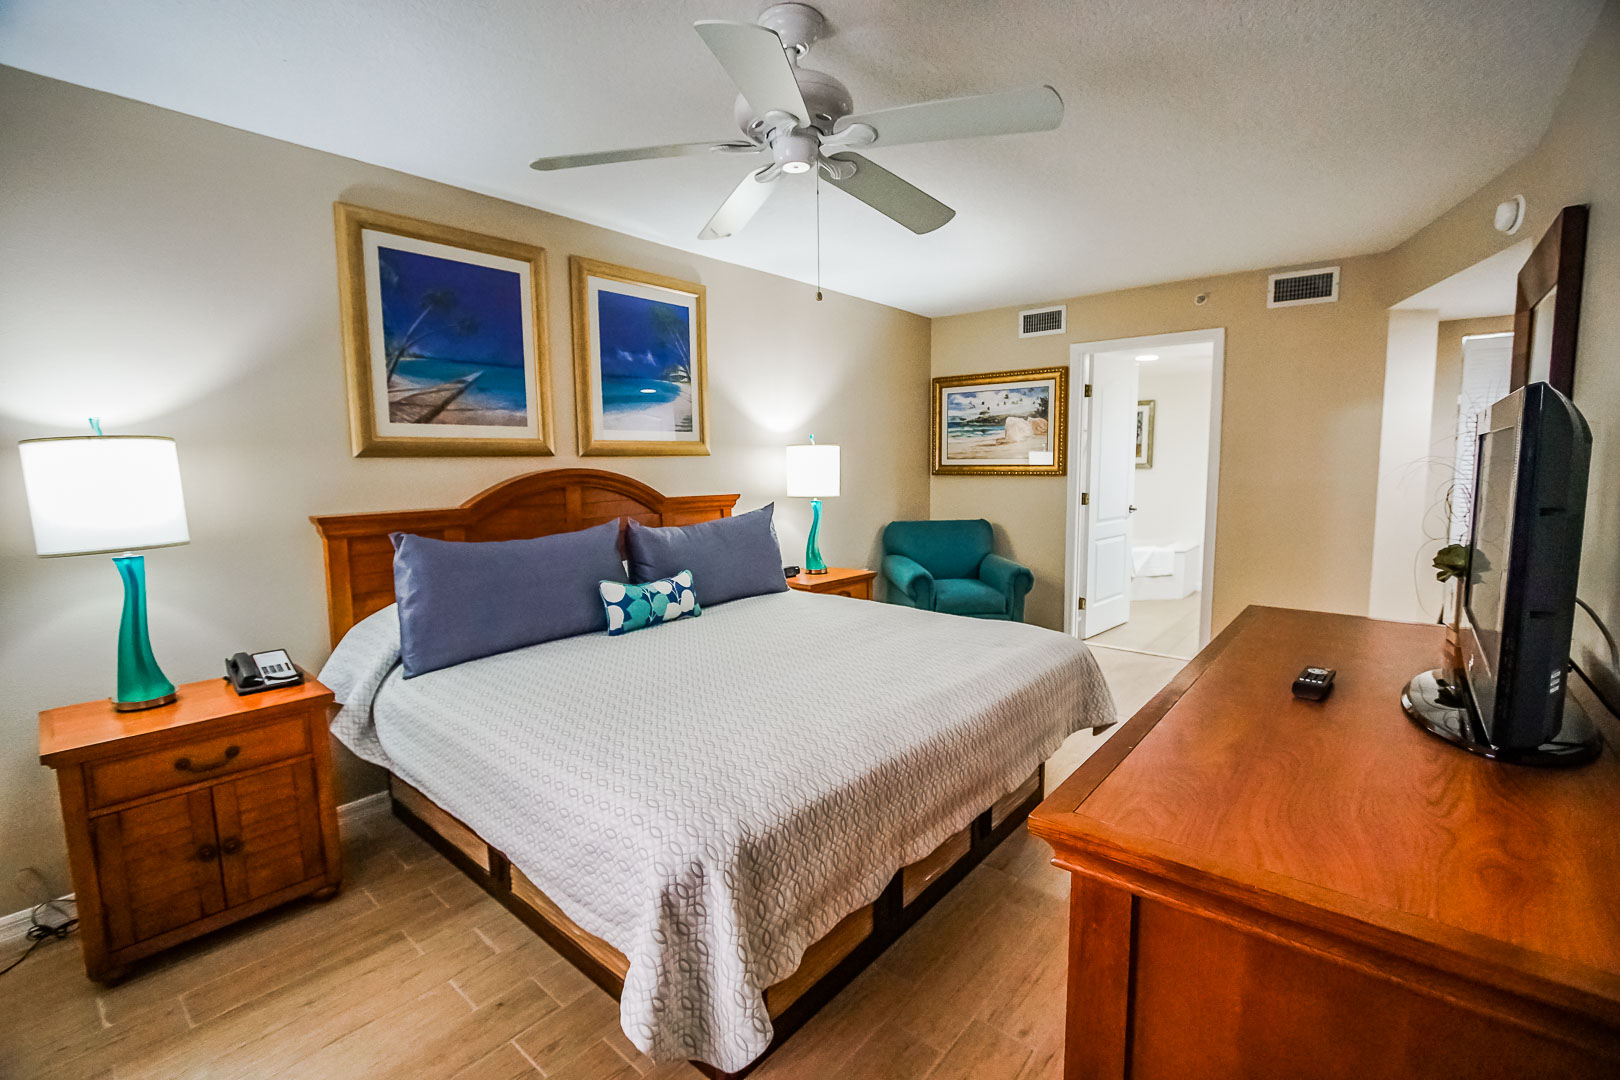 A spacious master bedroom at VRI's The Resort on Cocoa Beach in Florida.